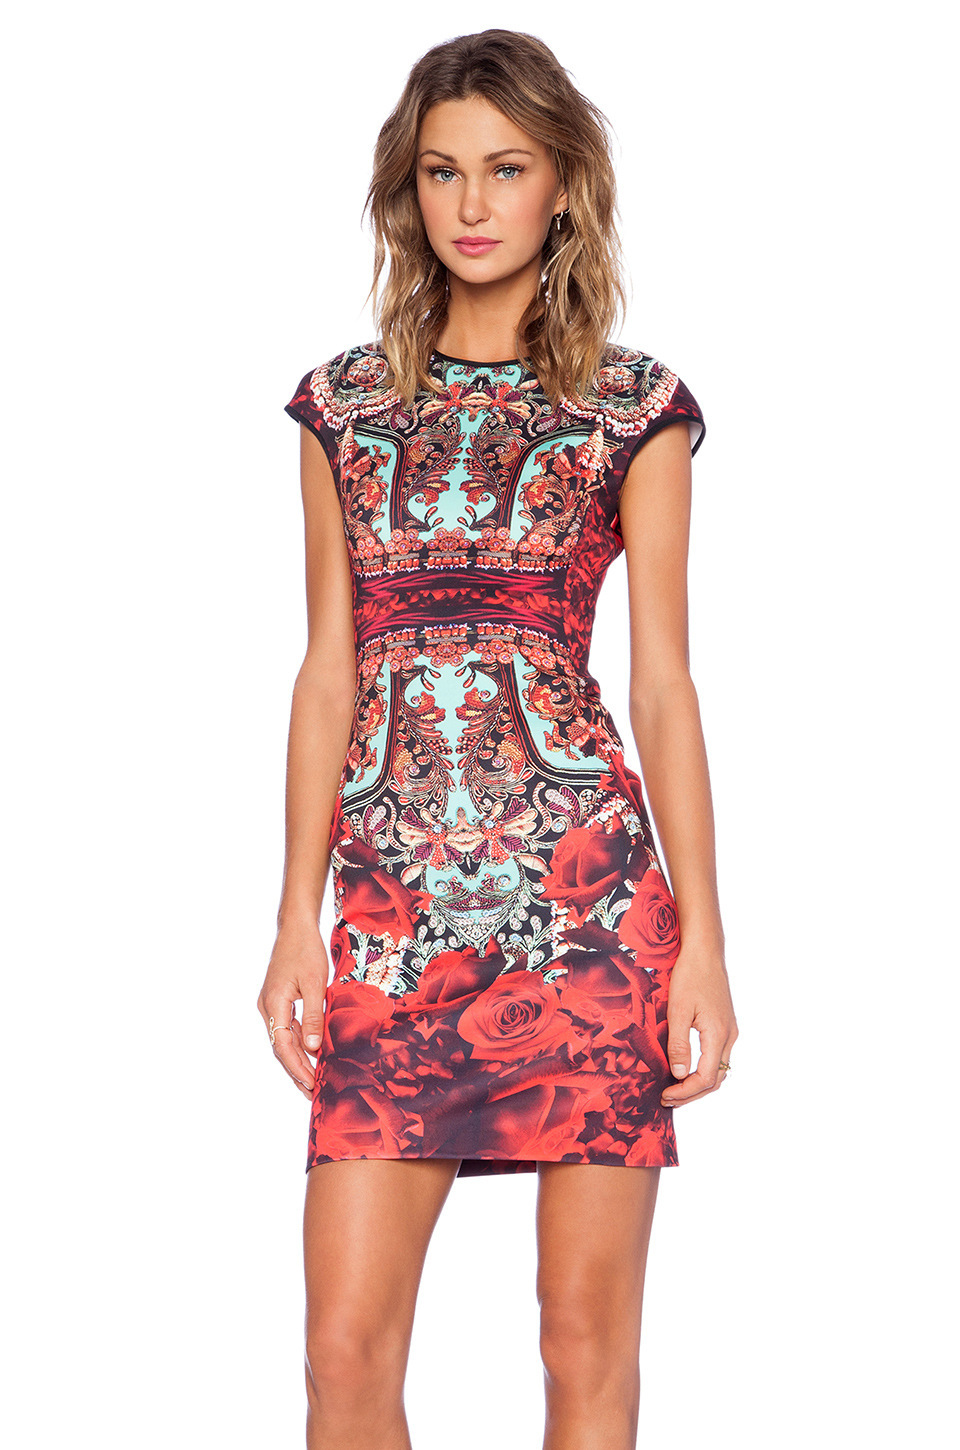 Compare Prices on Classy Summer Dresses- Online Shopping/Buy Low ...